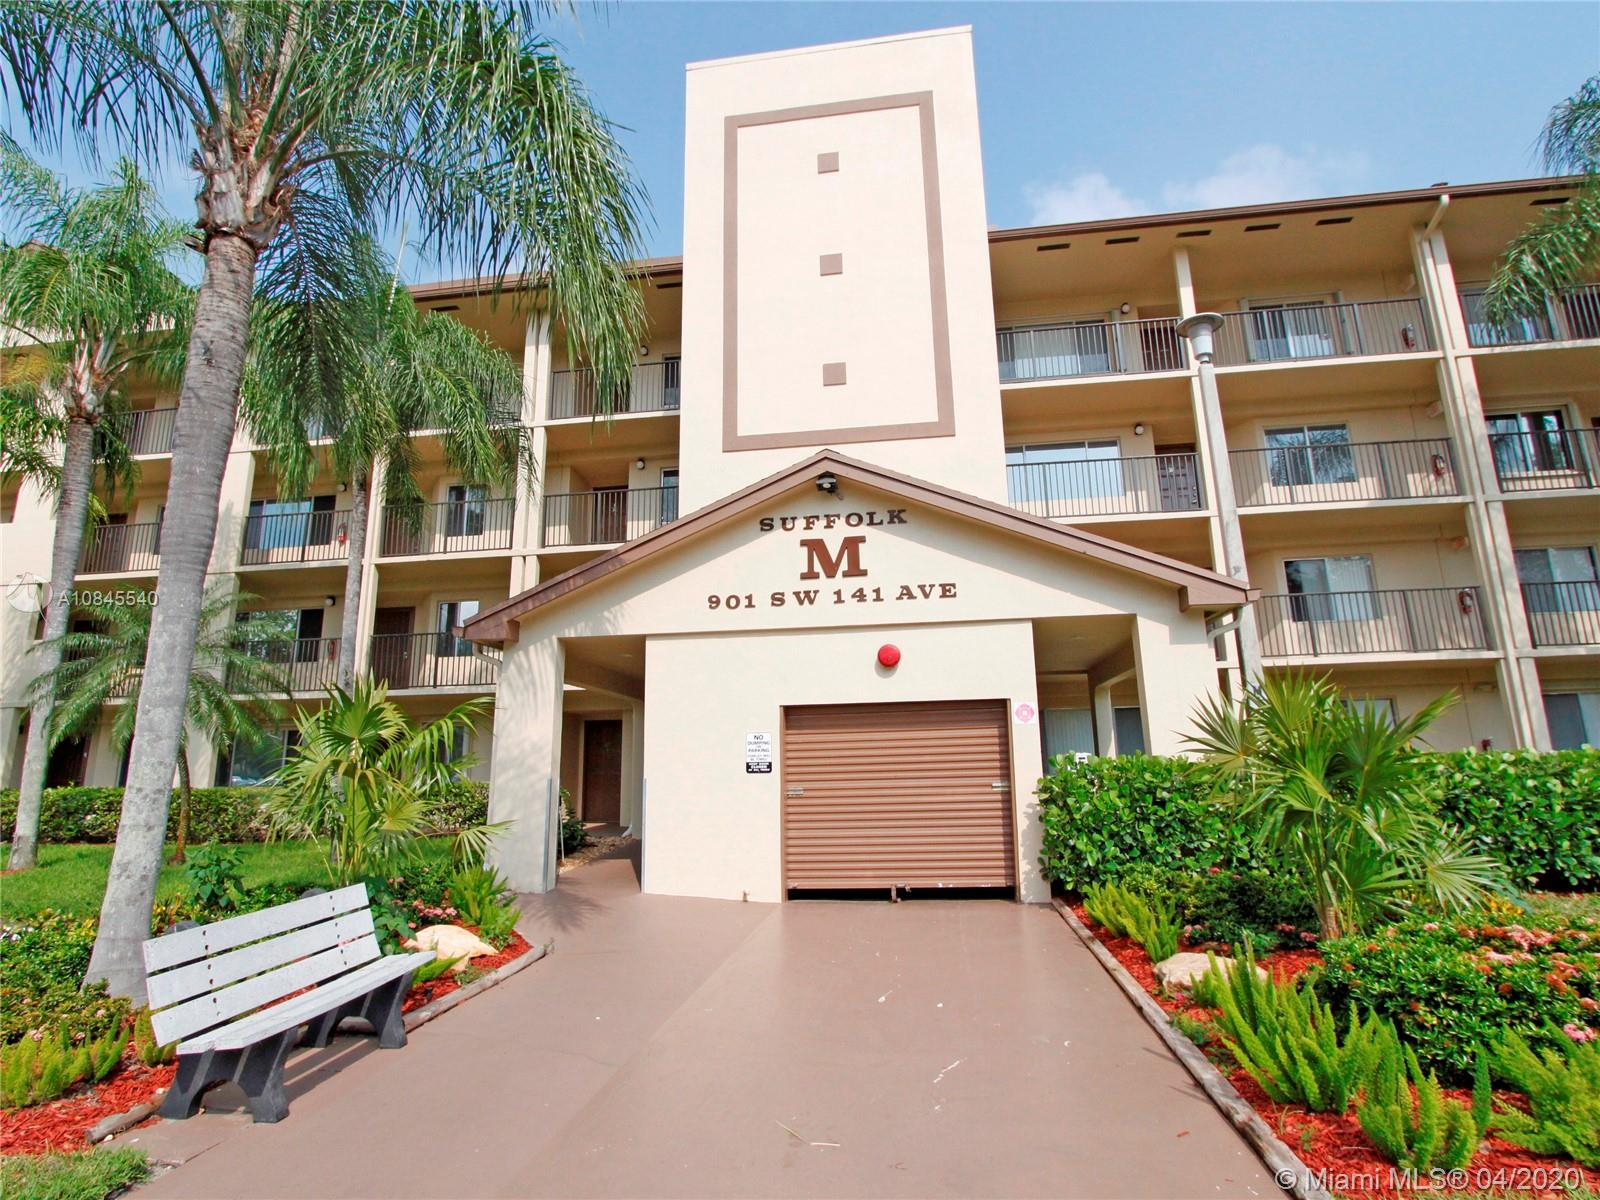 Biggest 2 bed/2 baths model, lakefront condo in Century Village, a 55+ community. The unit is located on the 3rd floor and the building has an ample elevator. The kitchen was remodeled and upgraded and lots of extra storage and cabinets. It has a small nook that is used as breakfast area. Tile throughout the apartment. Huge living/family room plus screen balcony with shutters that have gorgeous lake views. The master bedroom is huge with a walk-in closet and a linen closet. Exciting amenities with lots of events, pools, tennis courts, gym and even a community center! Free transport to local restaurants, pharmacies and A + schools.